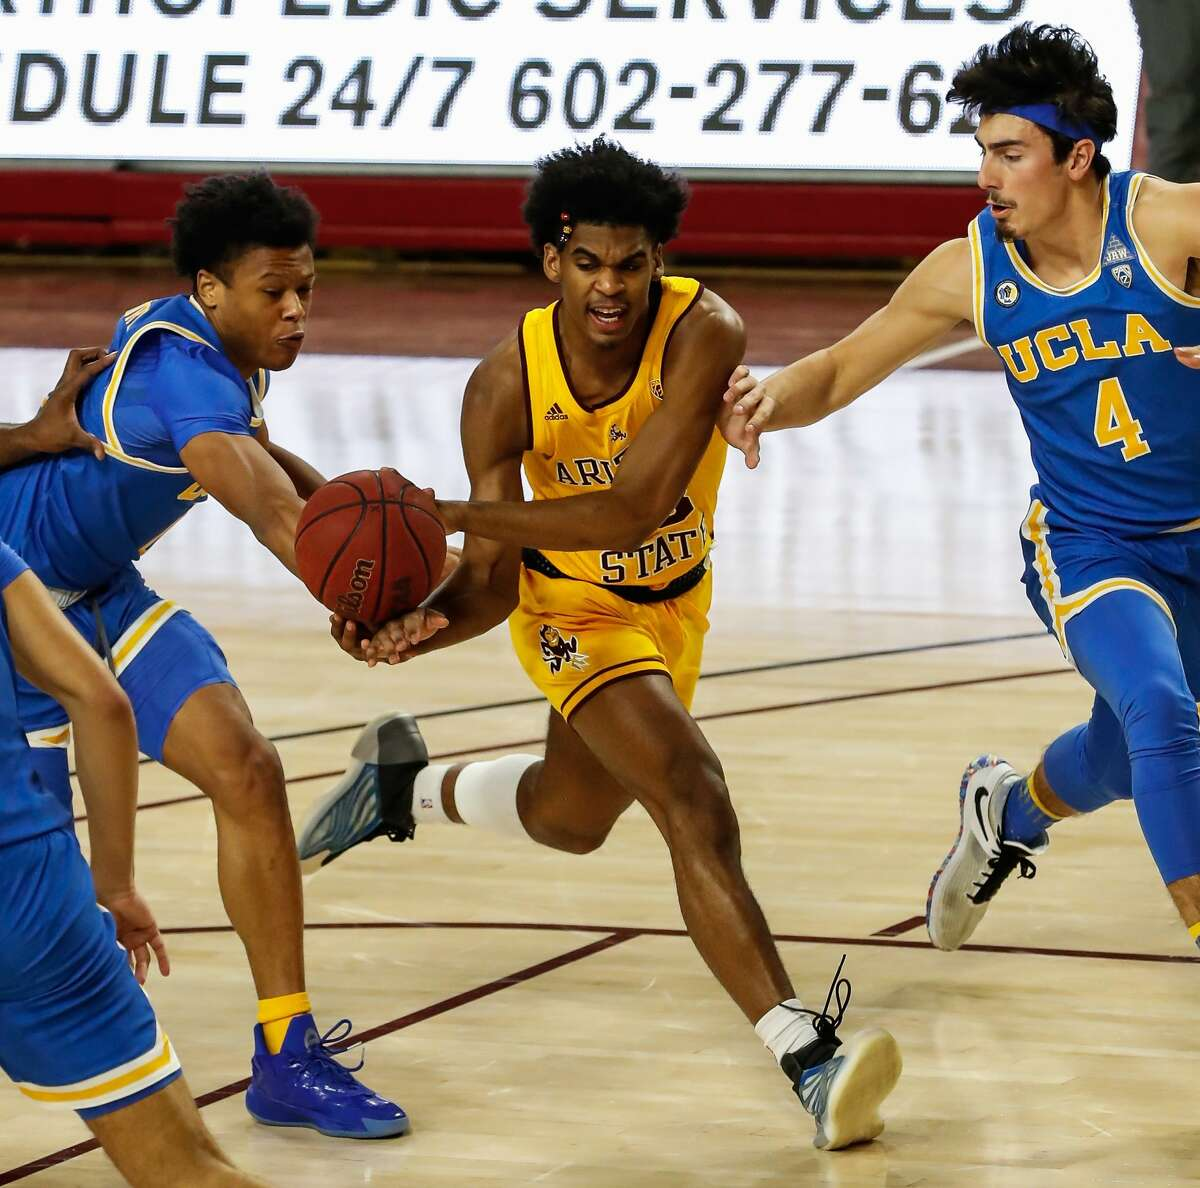 Arizona State Sun Devils guard Josh Christopher (13) drives to the basket during the college basketball game between the UCLA Bruins and the Arizona State Sun Devils on January 7, 2021 at Desert Financial Arena in Tempe, Arizona. (Photo by Kevin Abele/Icon Sportswire via Getty Images)